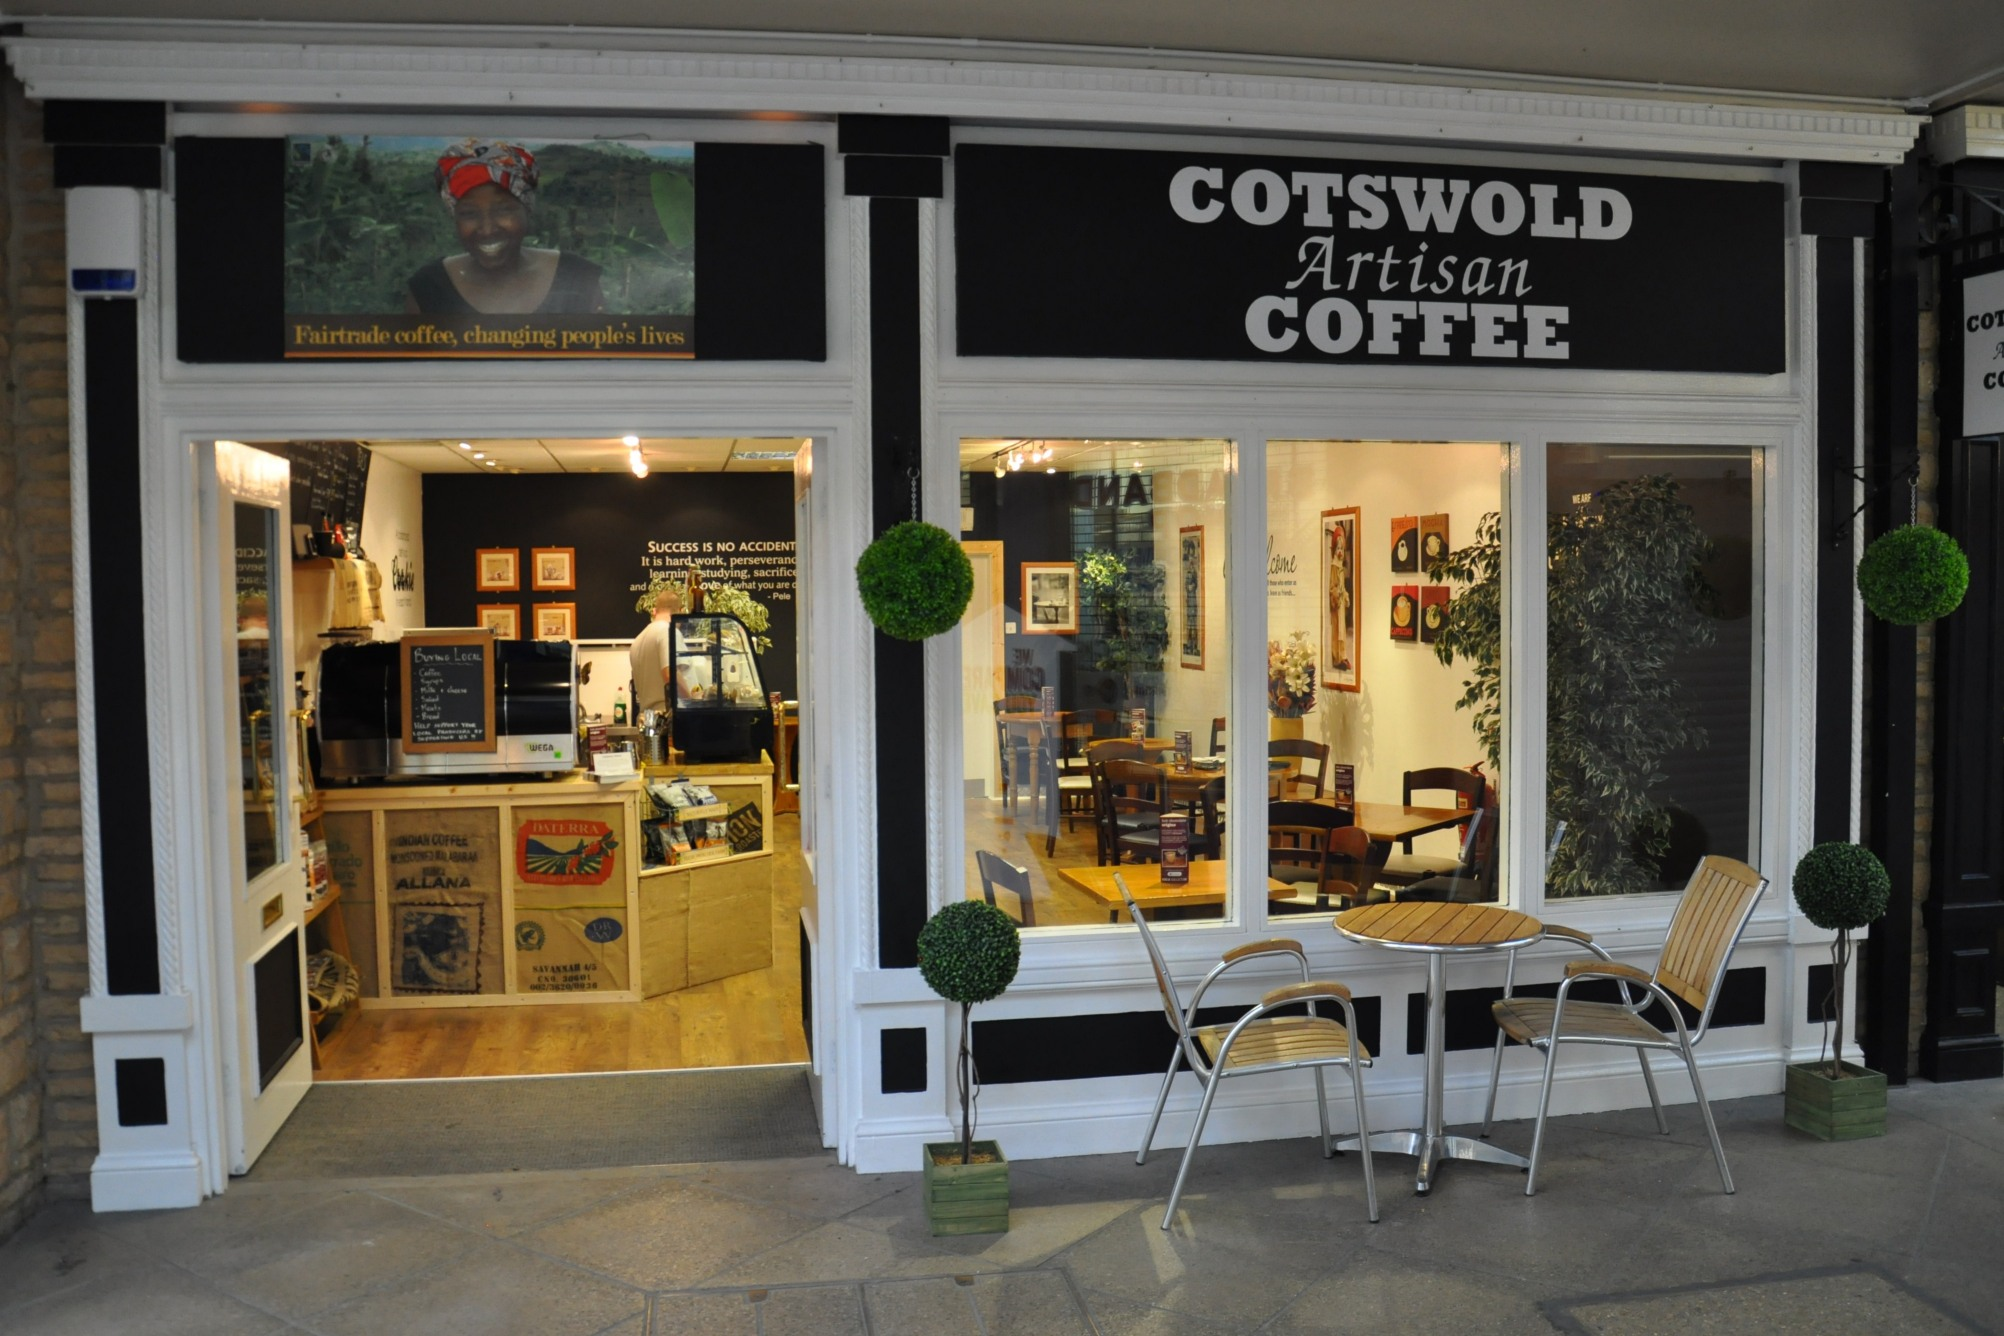 The exterior of Cotswold Artisan Coffee on Bishop's Walk in Cirencester.